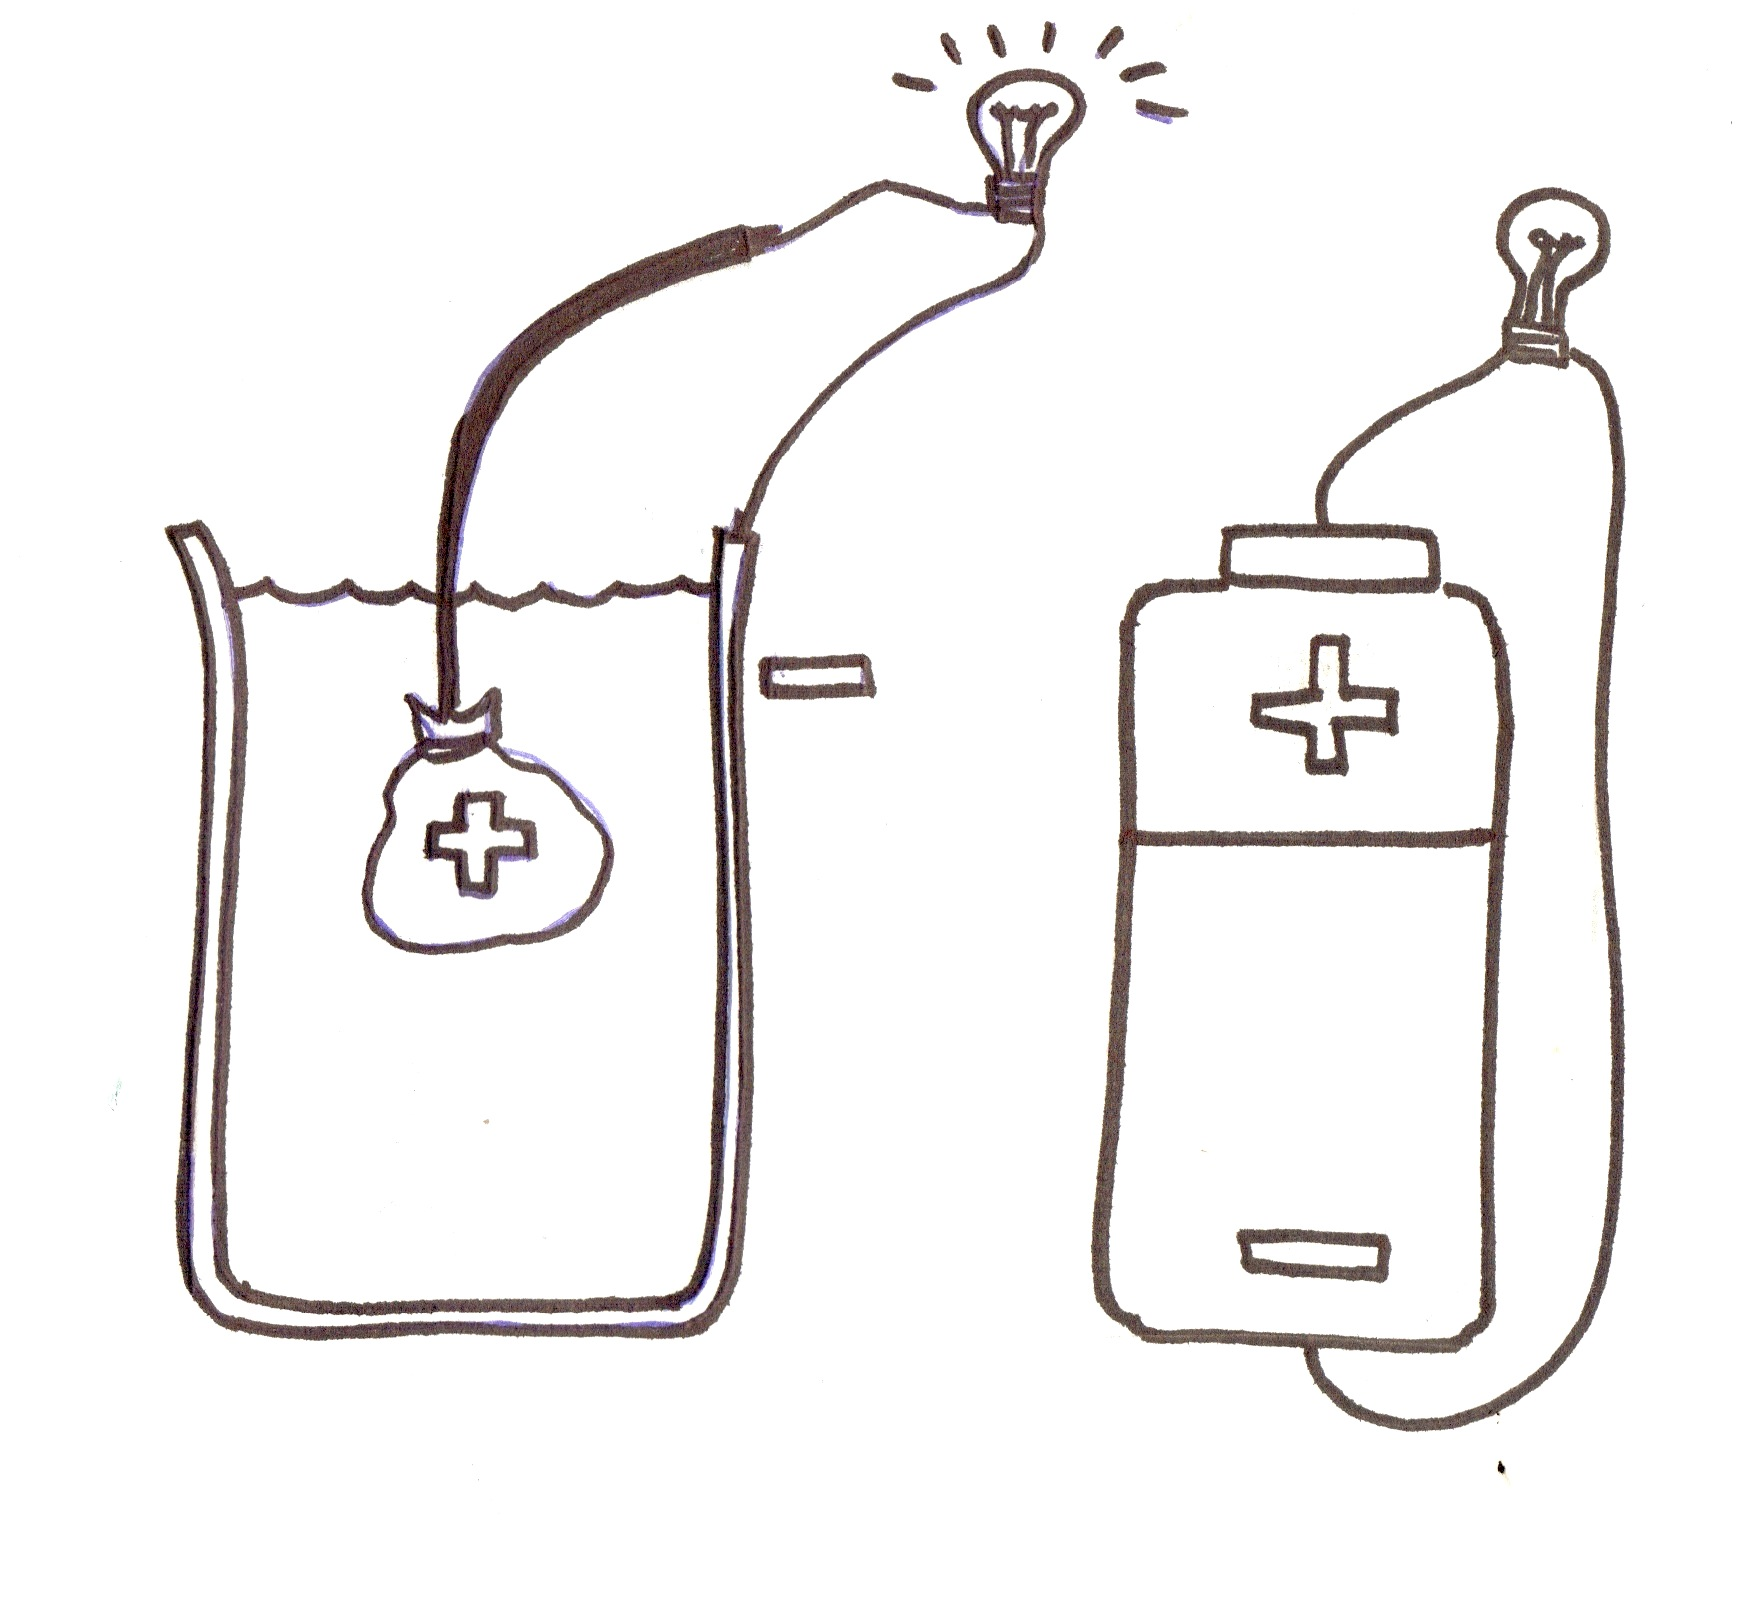 Archivelessonsbatteryteachersguide Pen Wiki Lesson 2 How To Use A Battery 3 Make Complete Circuit